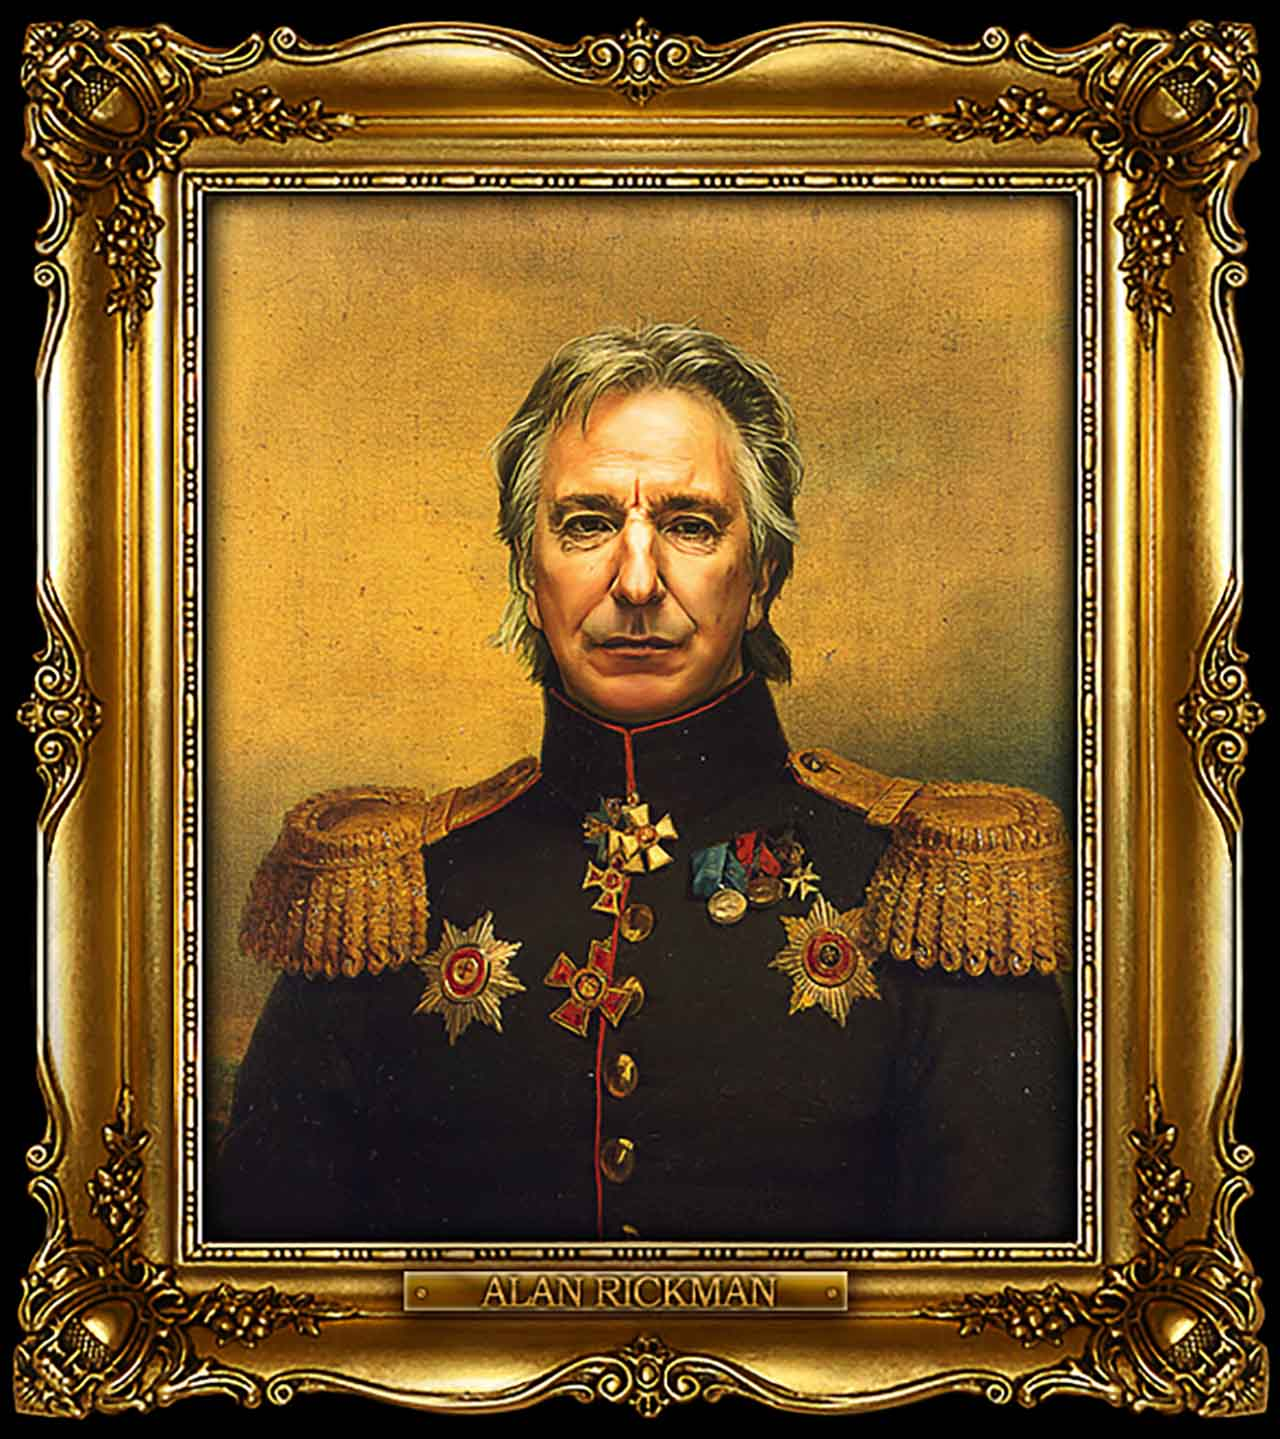 Artist Turns Famous Actors Into Russian Generals - Alan Rickman